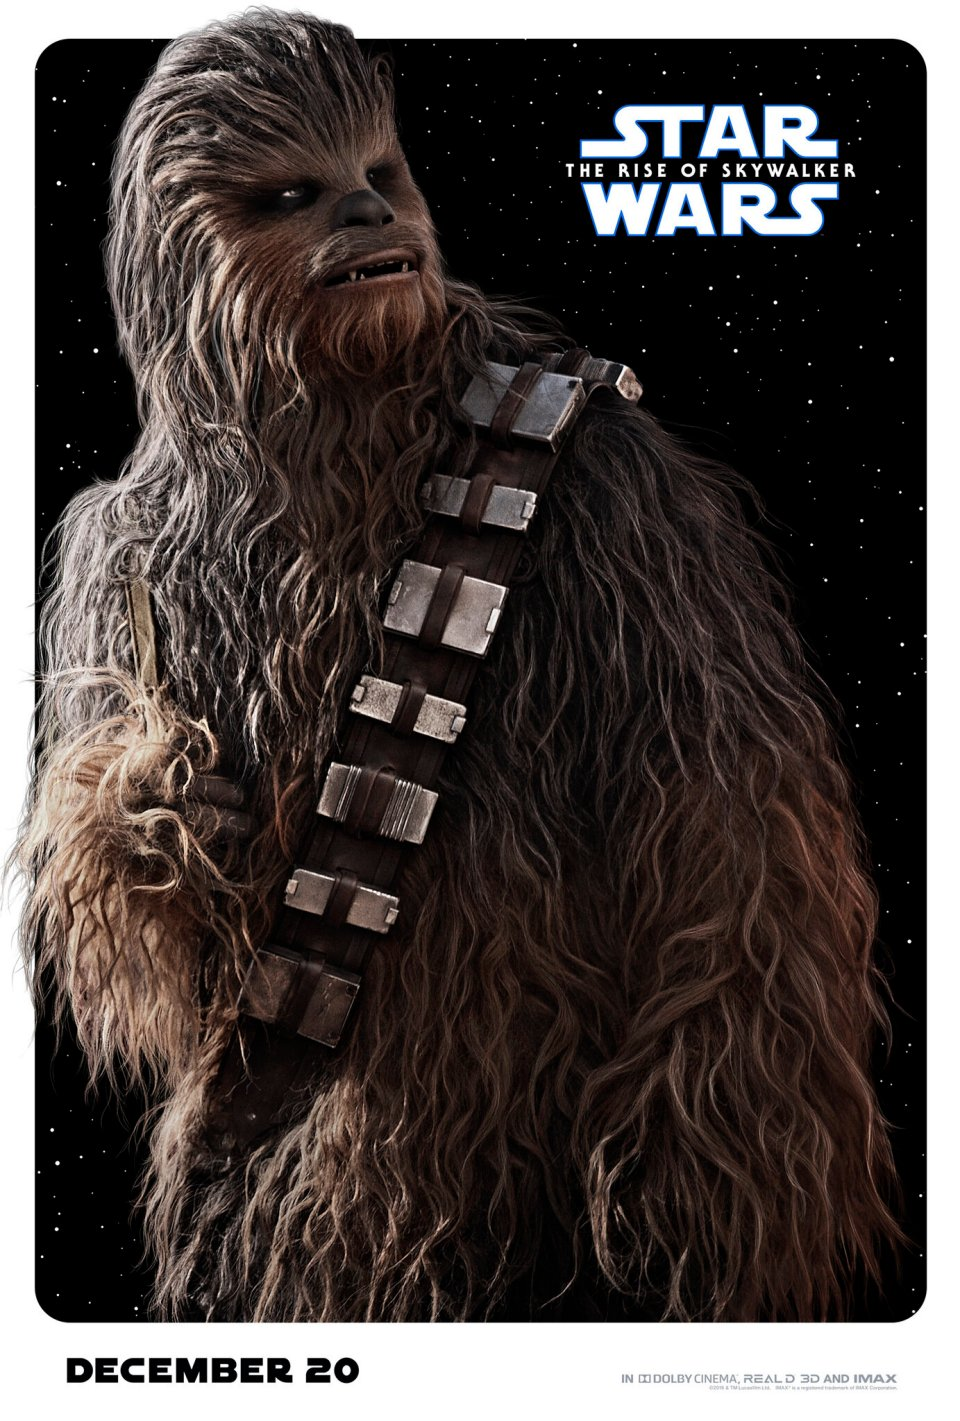 11-character-posters-released-for-star-wars-the-rise-of-skywalker9.jpg